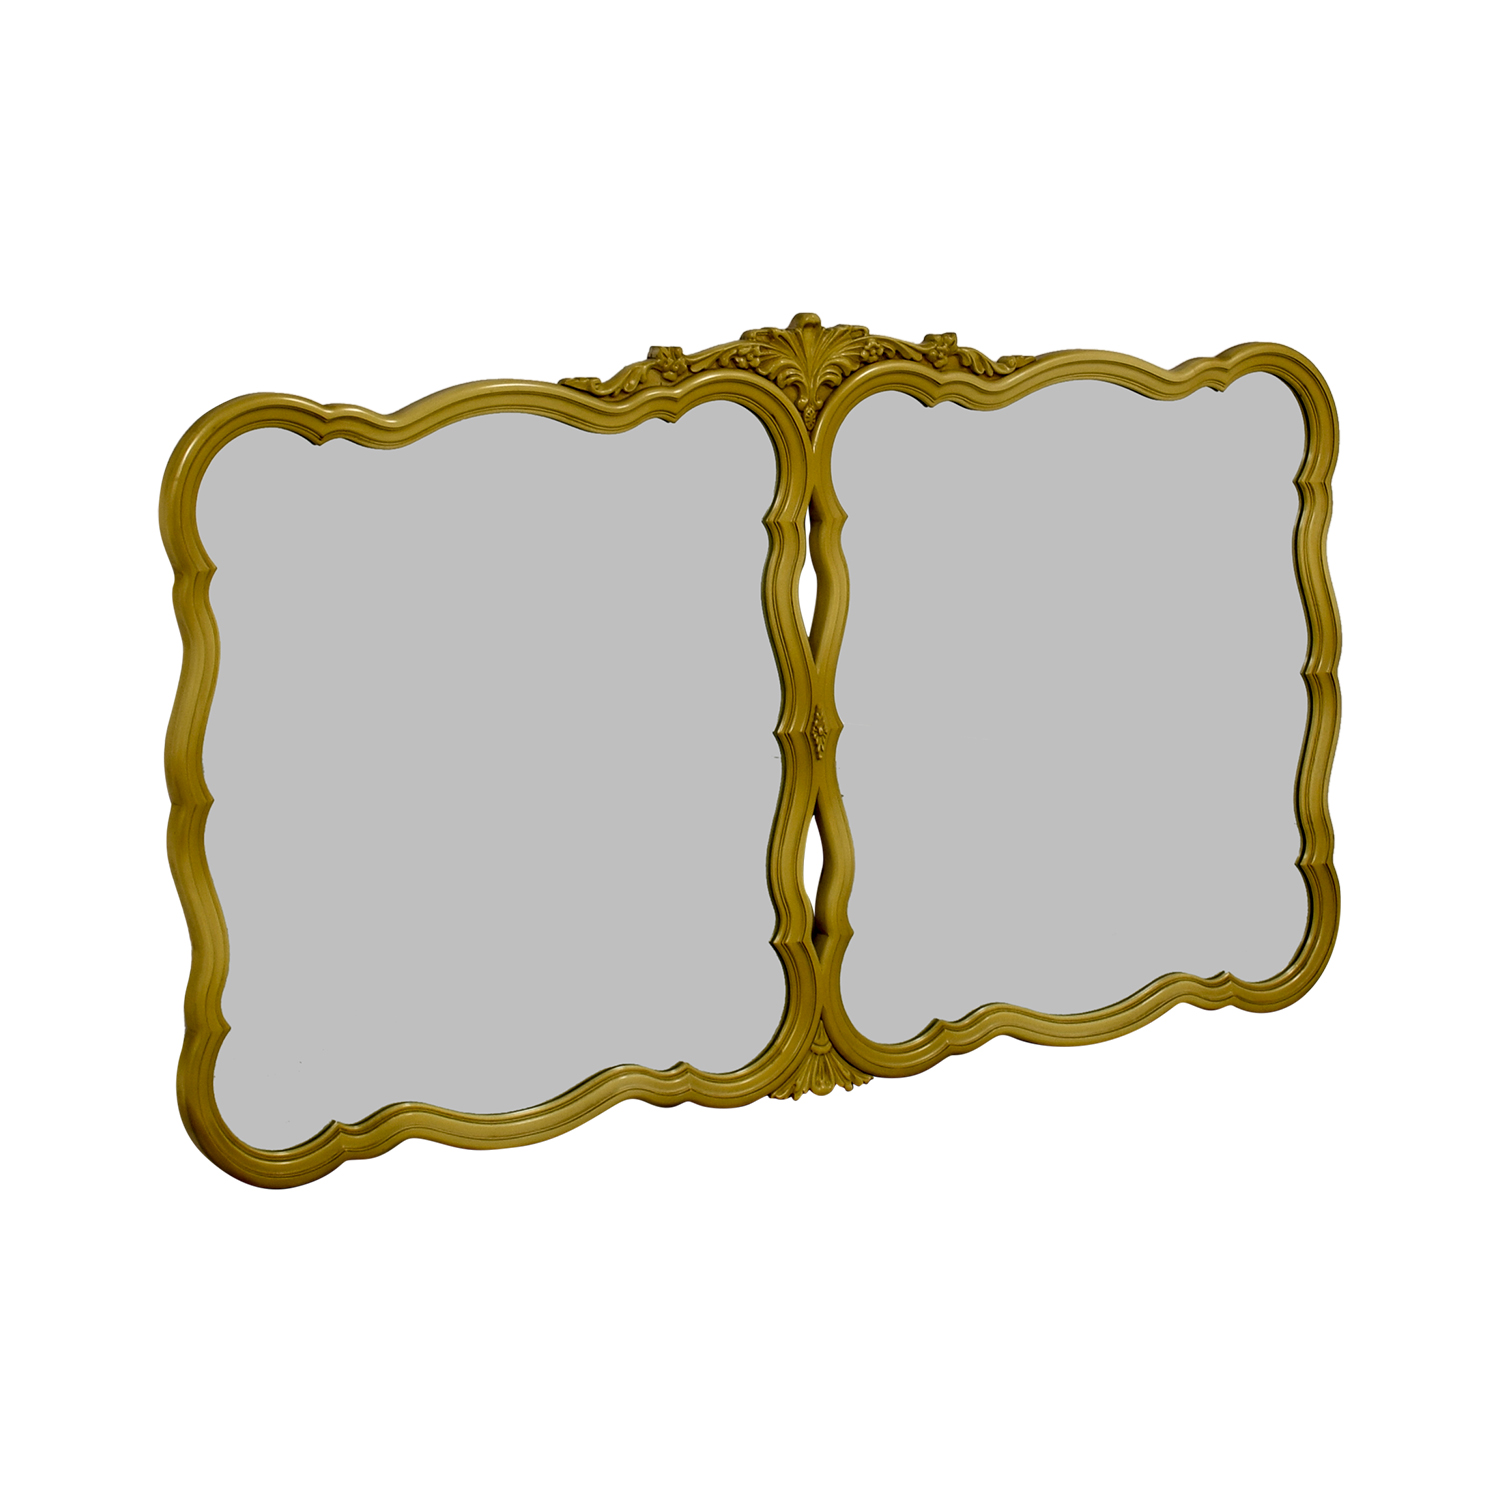 Vintage Gold Framed Double Wall Mirror / Decor